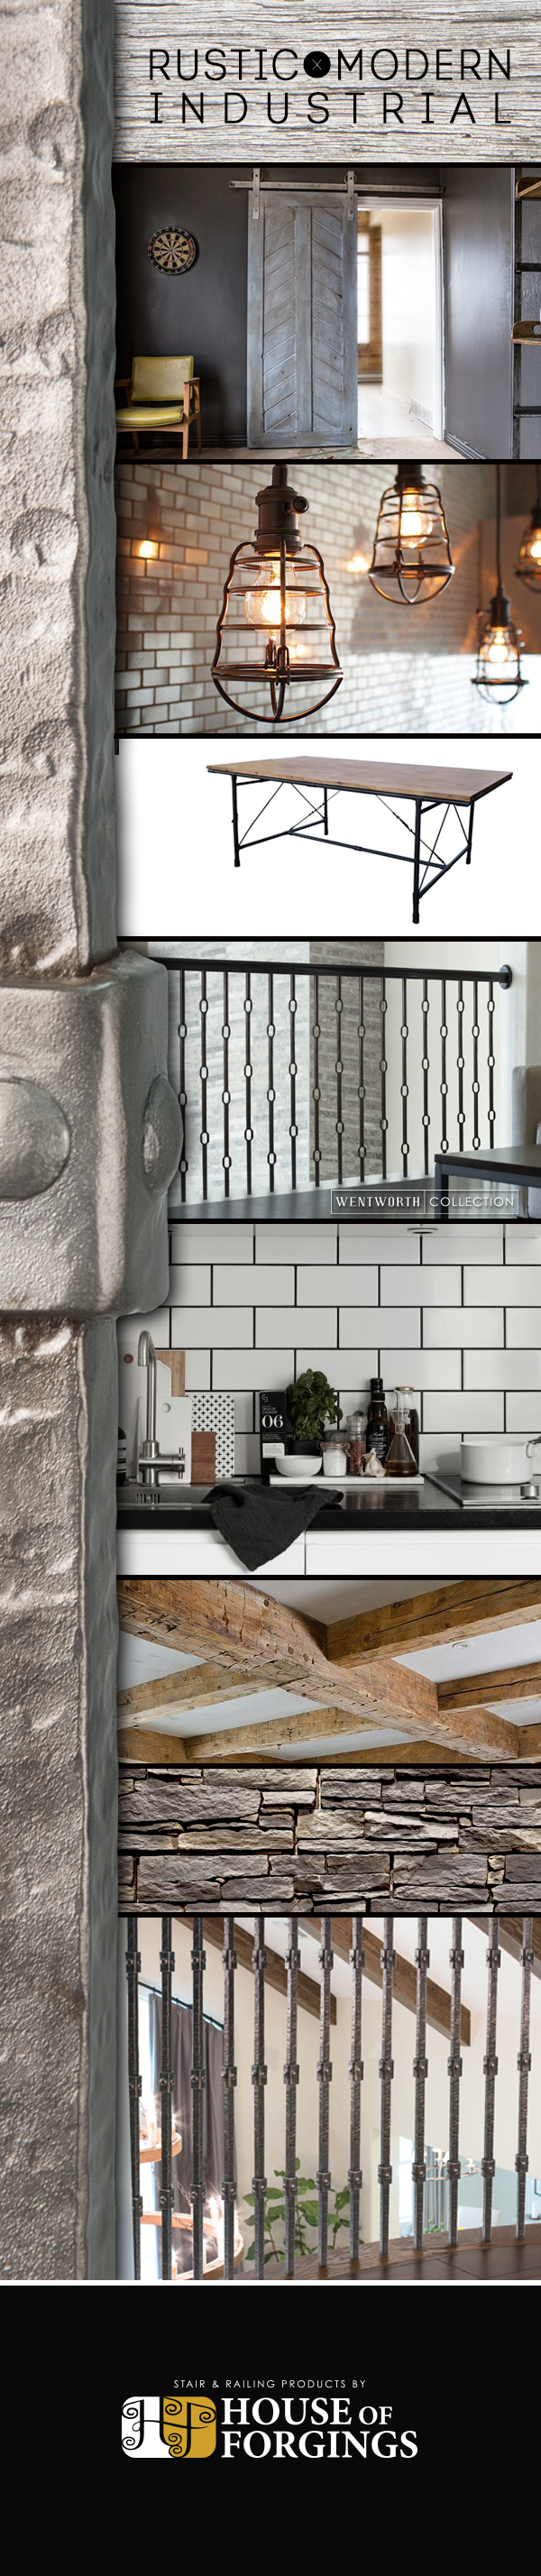 Rustic Modern Industrial - Wentworth Lookbook